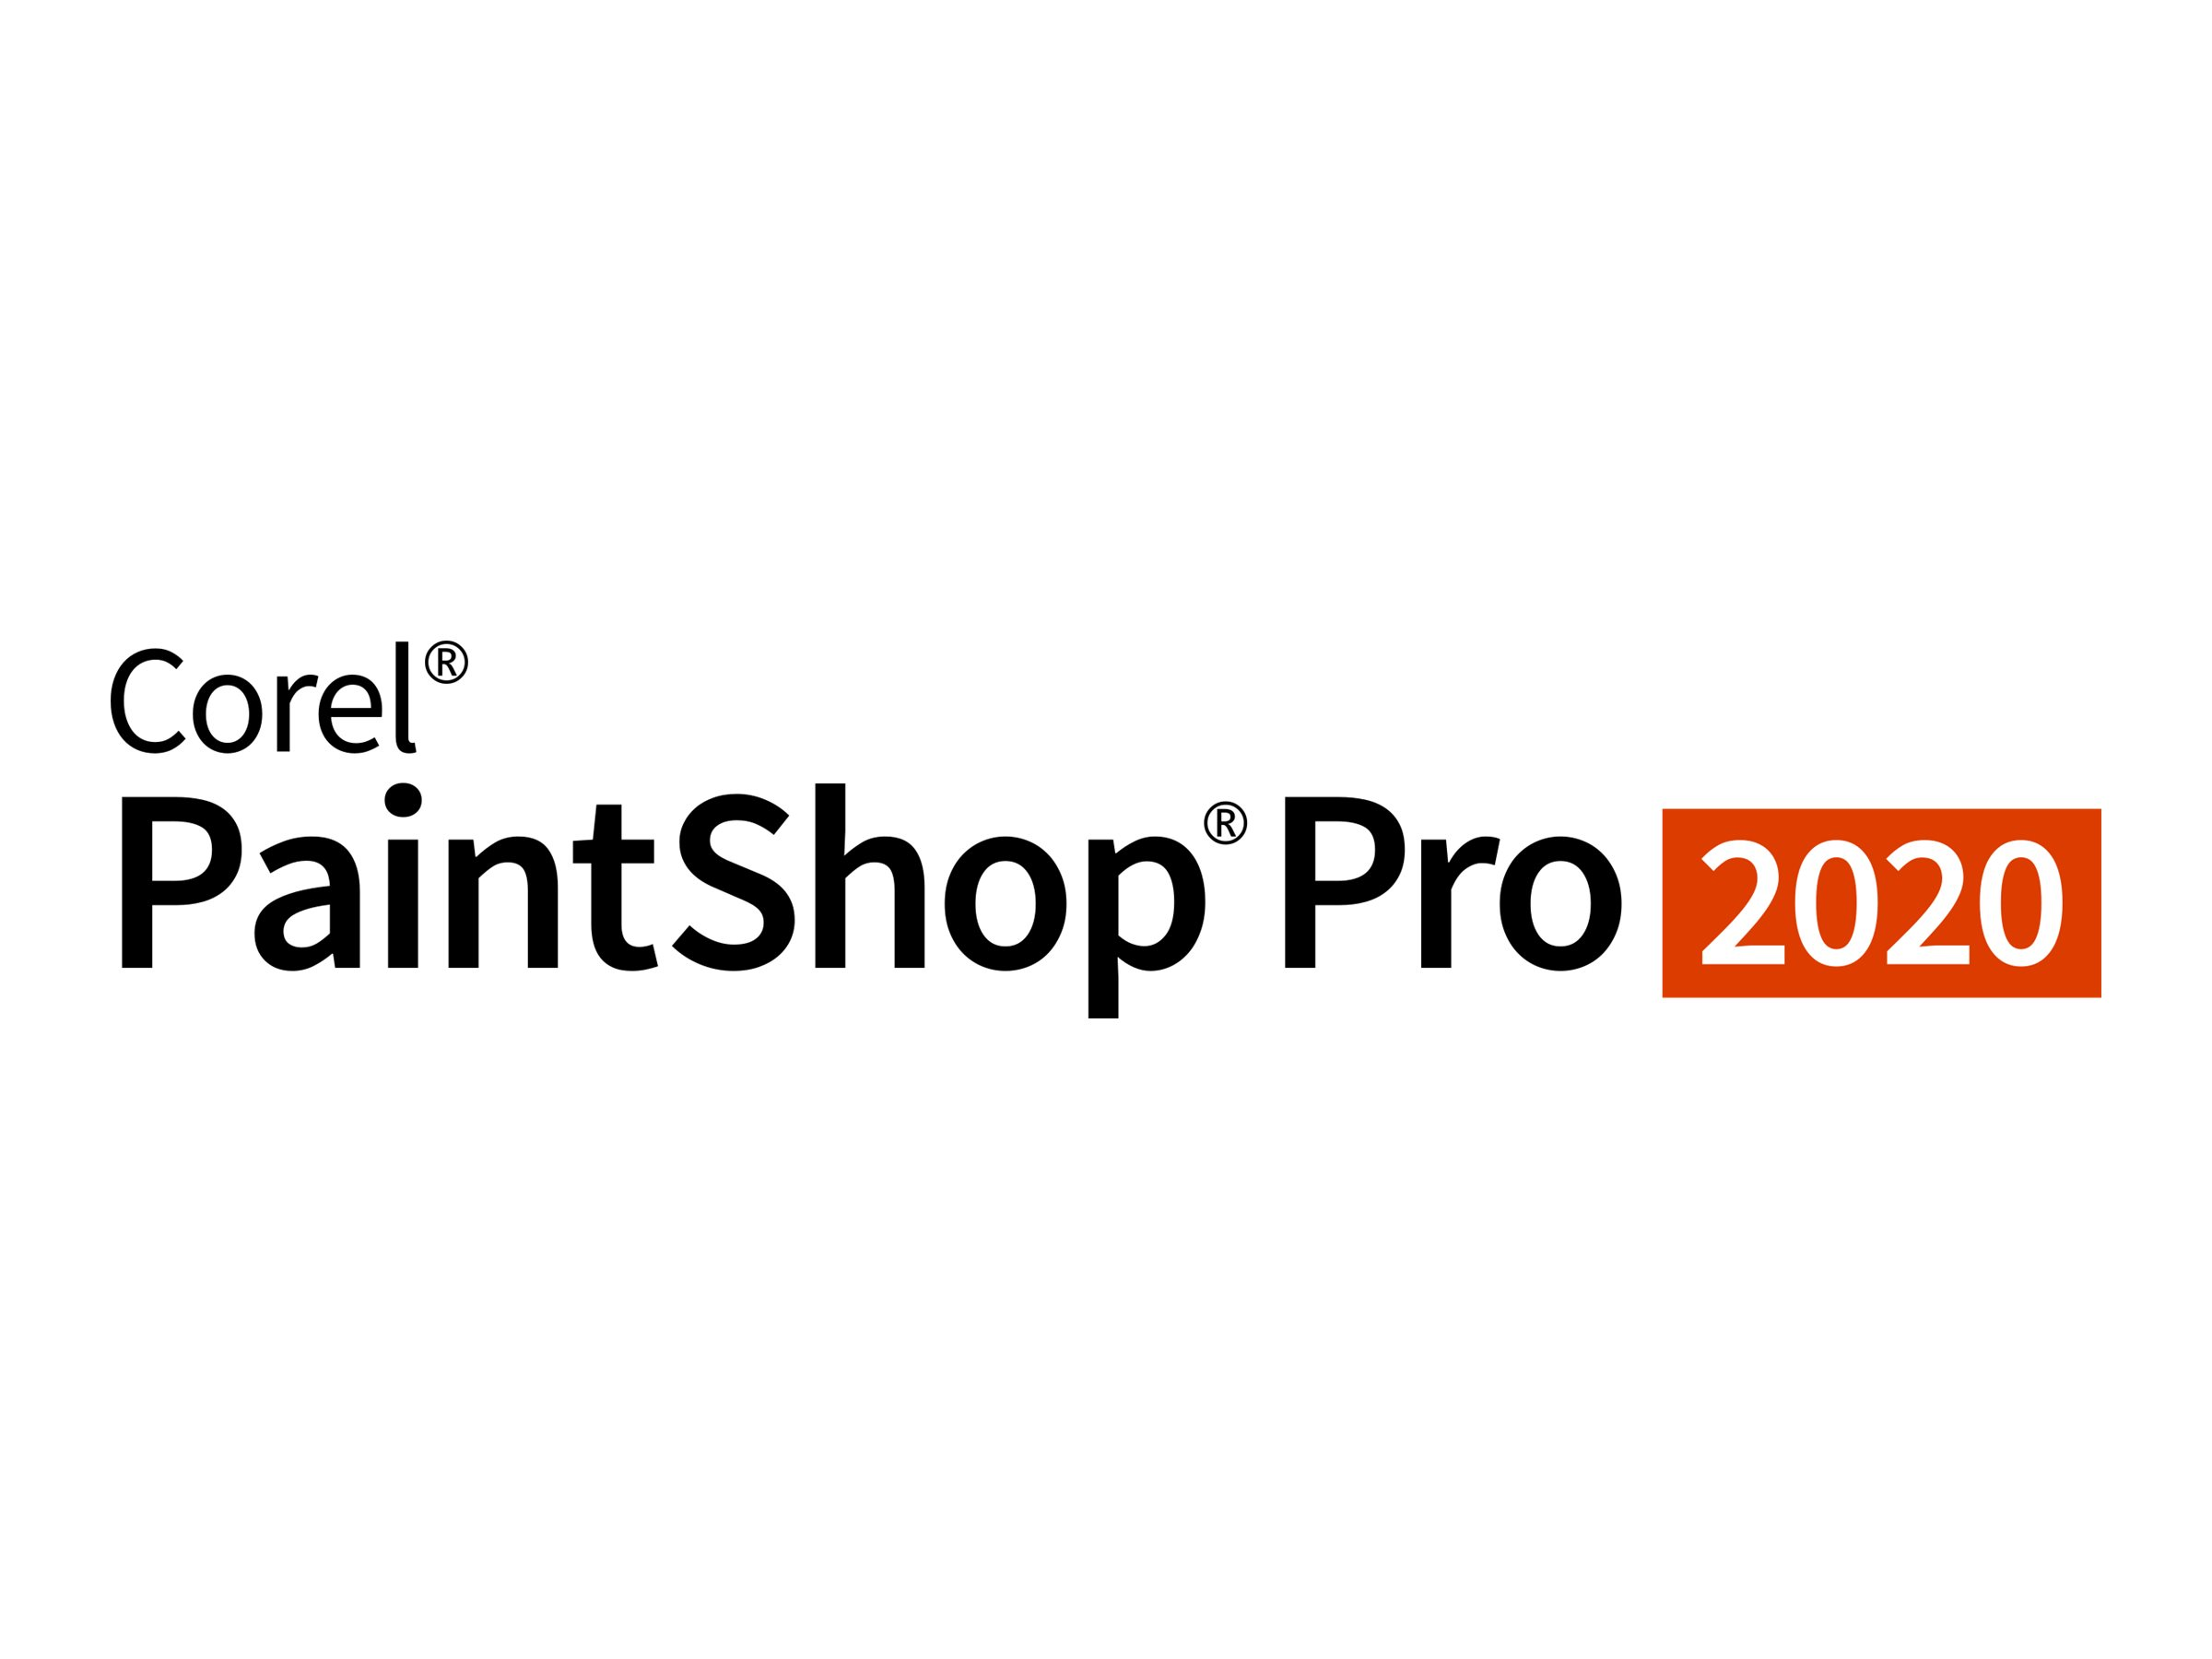 Corel PaintShop Pro 2020 - Upgrade-Lizenz - 1 Benutzer - Corporate / Unternehmens- - Win - Multi-Lingual